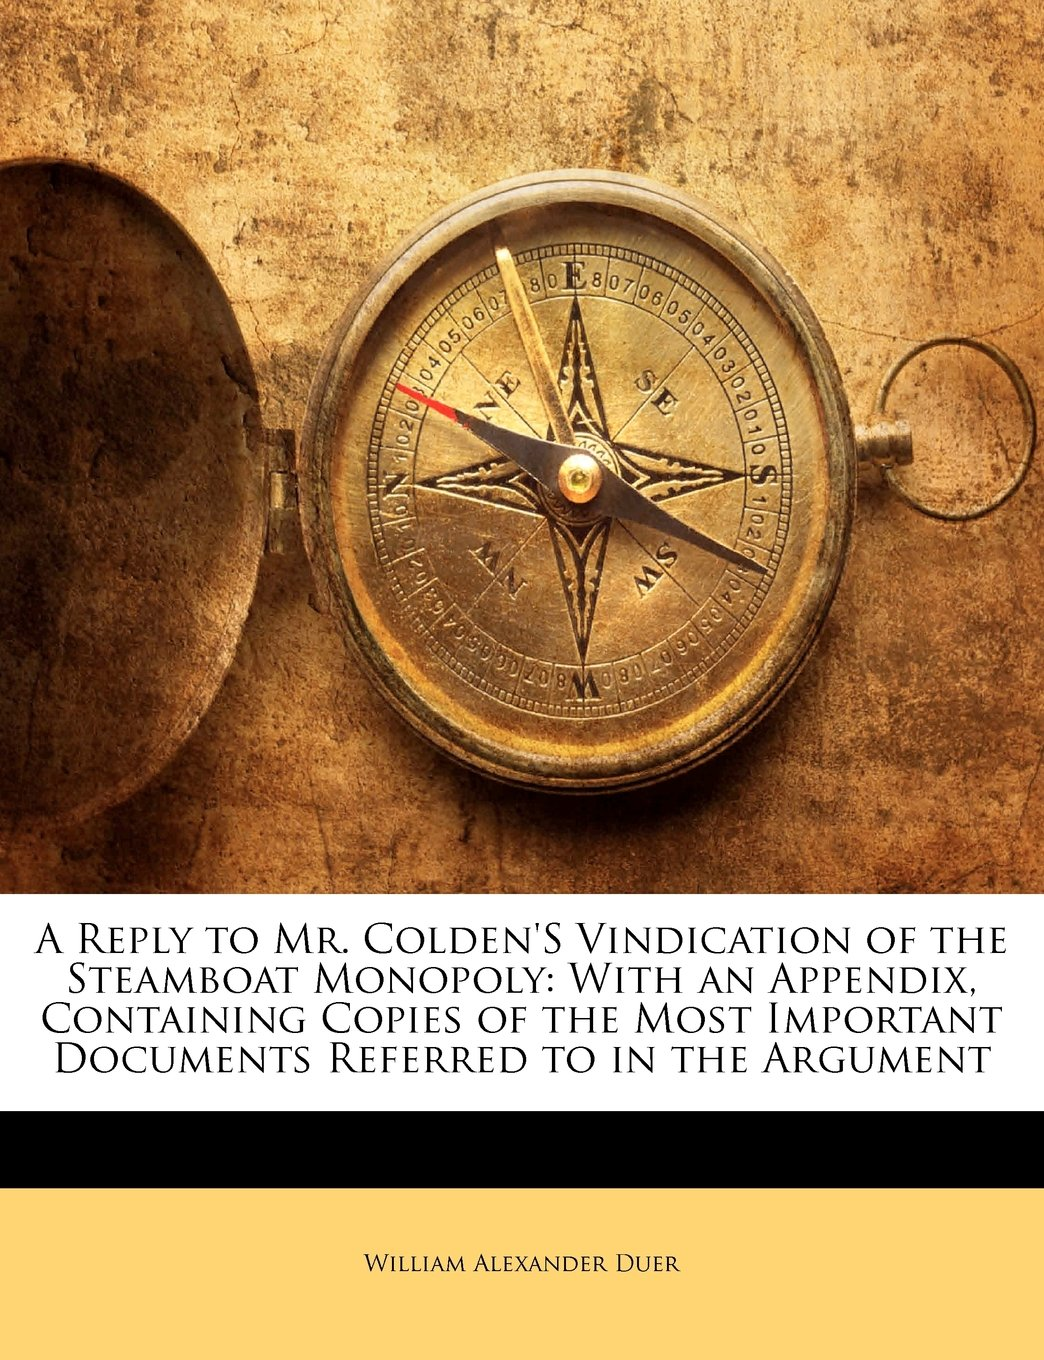 Read Online A Reply to Mr. Colden'S Vindication of the Steamboat Monopoly: With an Appendix, Containing Copies of the Most Important Documents Referred to in the Argument ebook